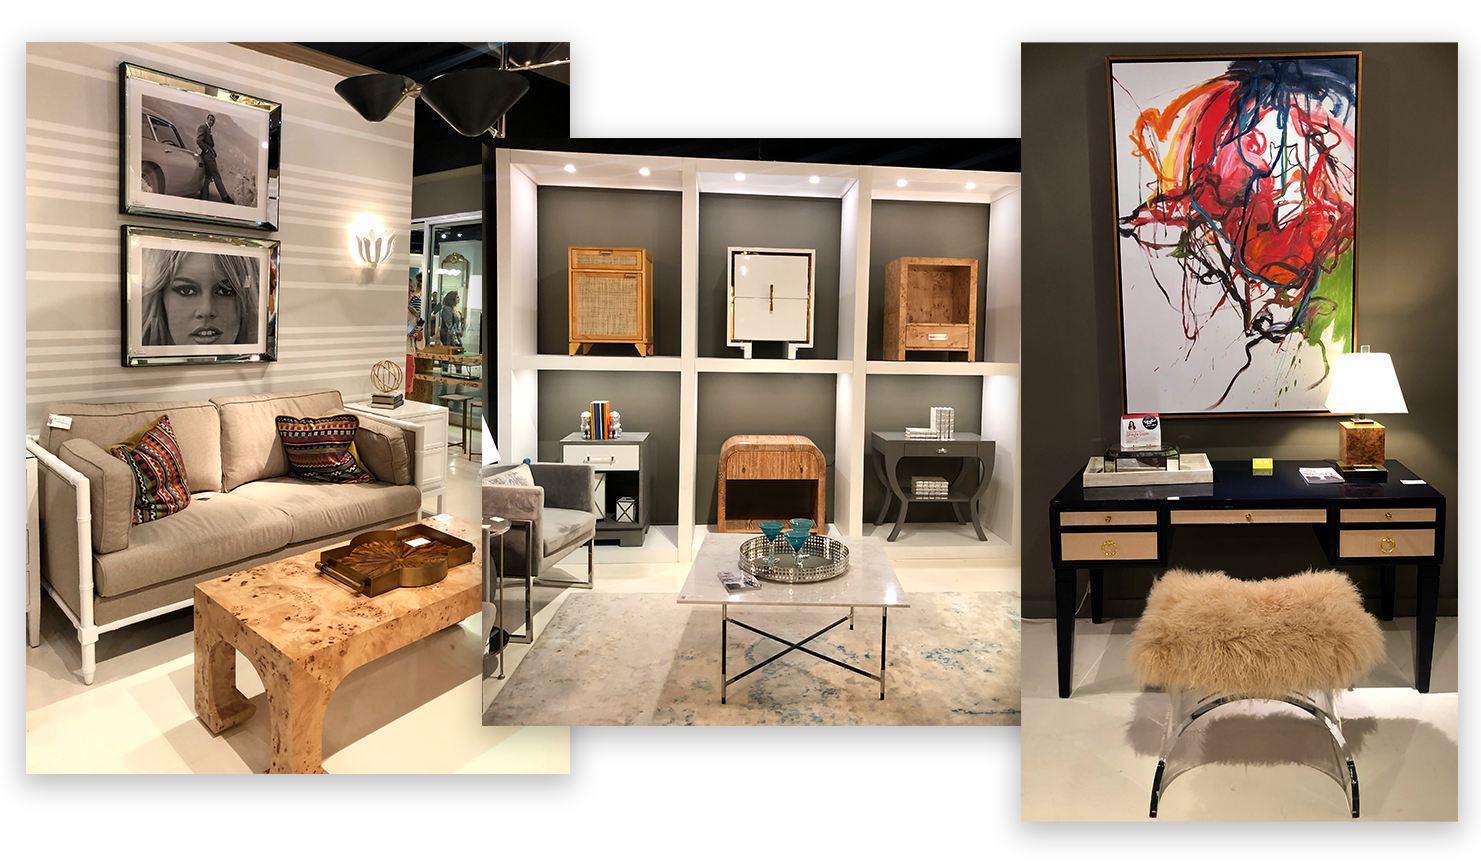 worlds-away-showroom-collage